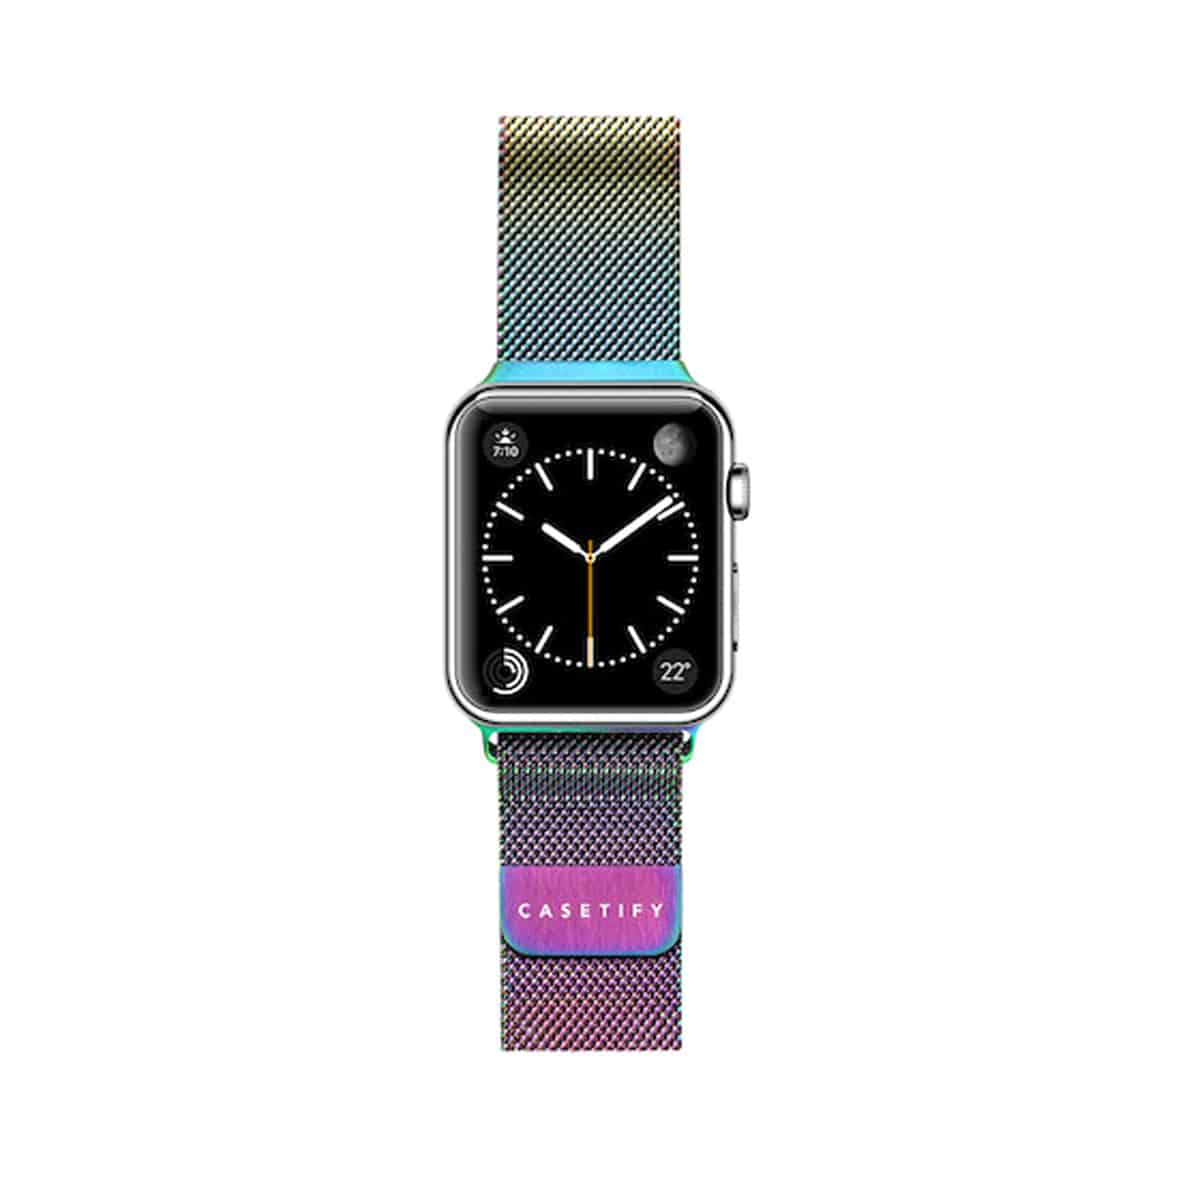 This Stainless Steel Mesh Apple Watch Band Shines like a Prism